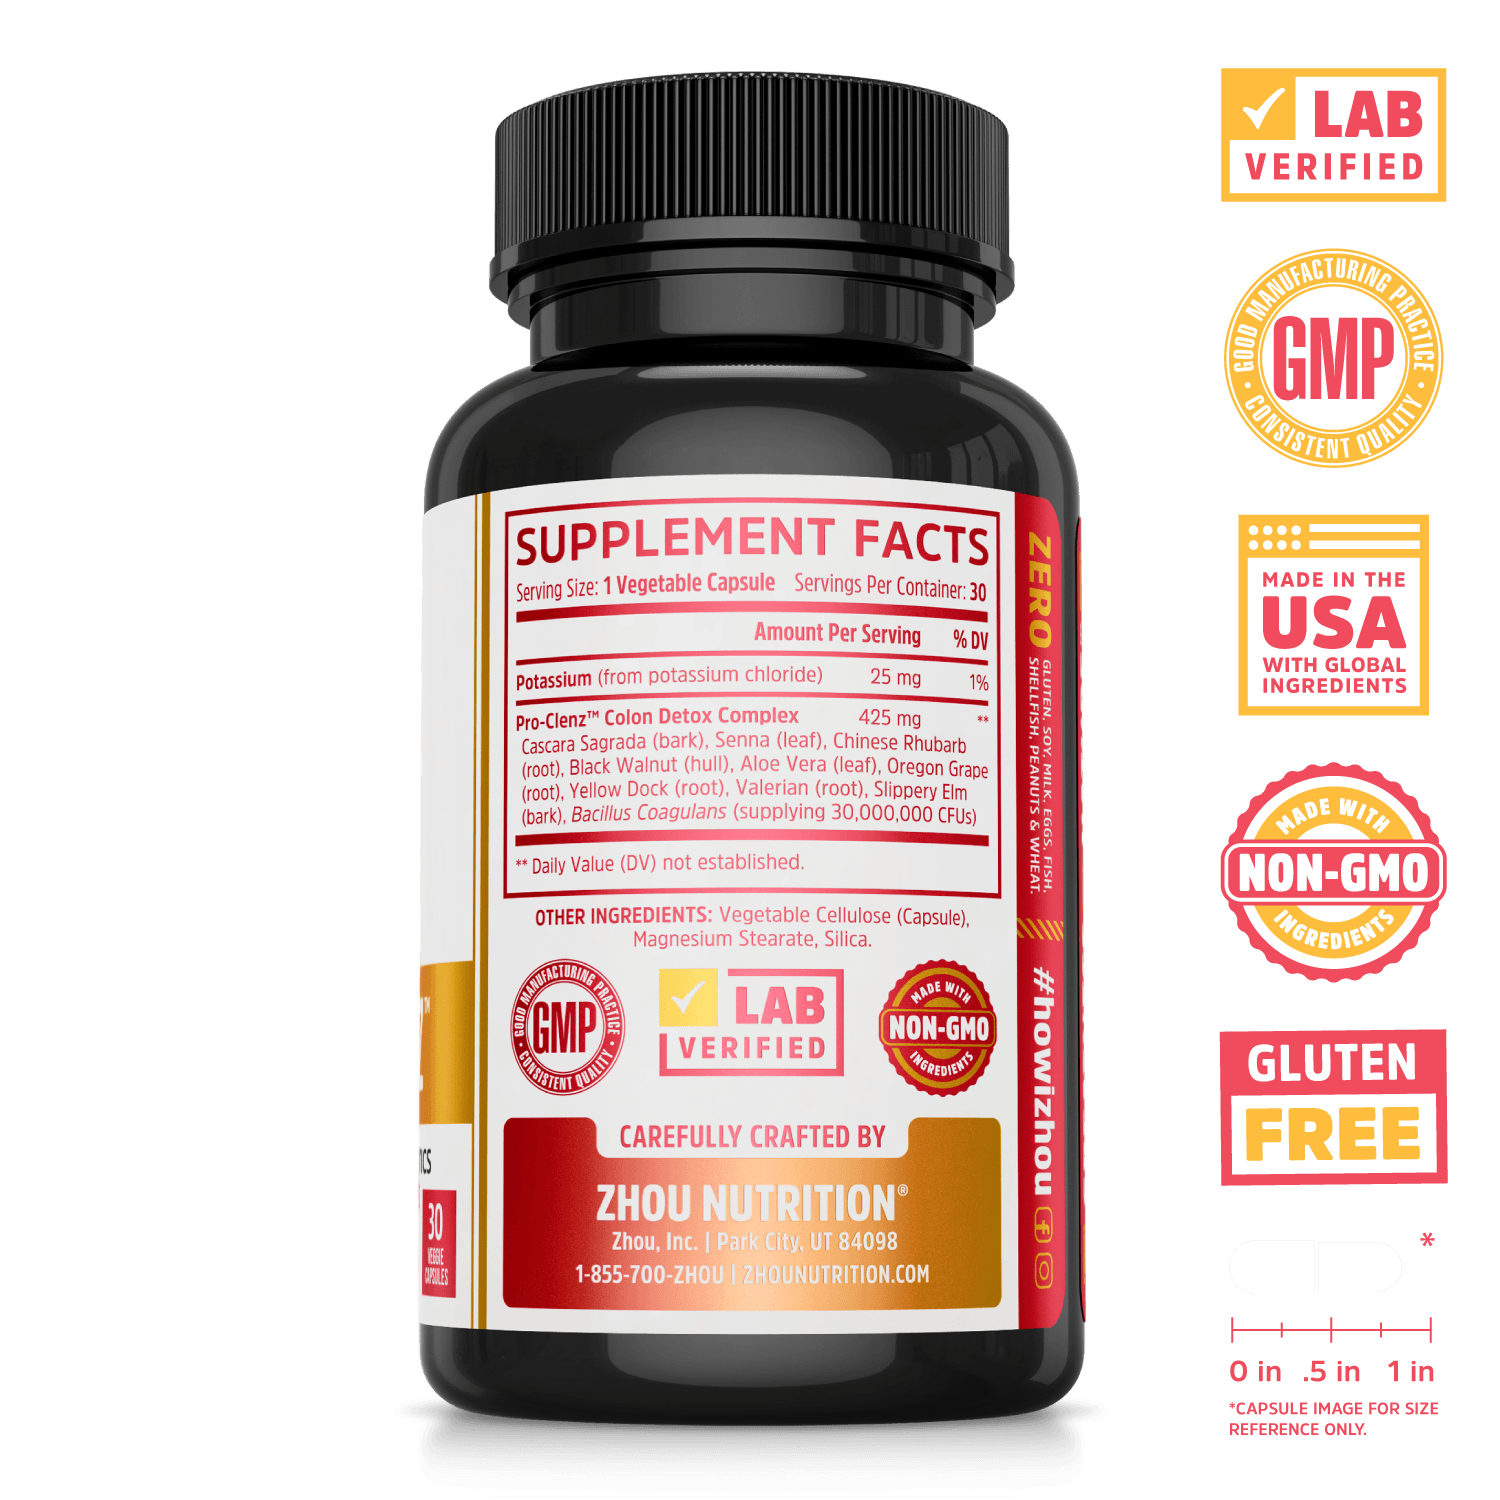 Zhou Nutrition Pro-Clenz Colon Detox Complex with Probiotics. Lab verified, good manufacturing practices, made in the USA with global ingredients, made with non-GMO ingredients, gluten free.